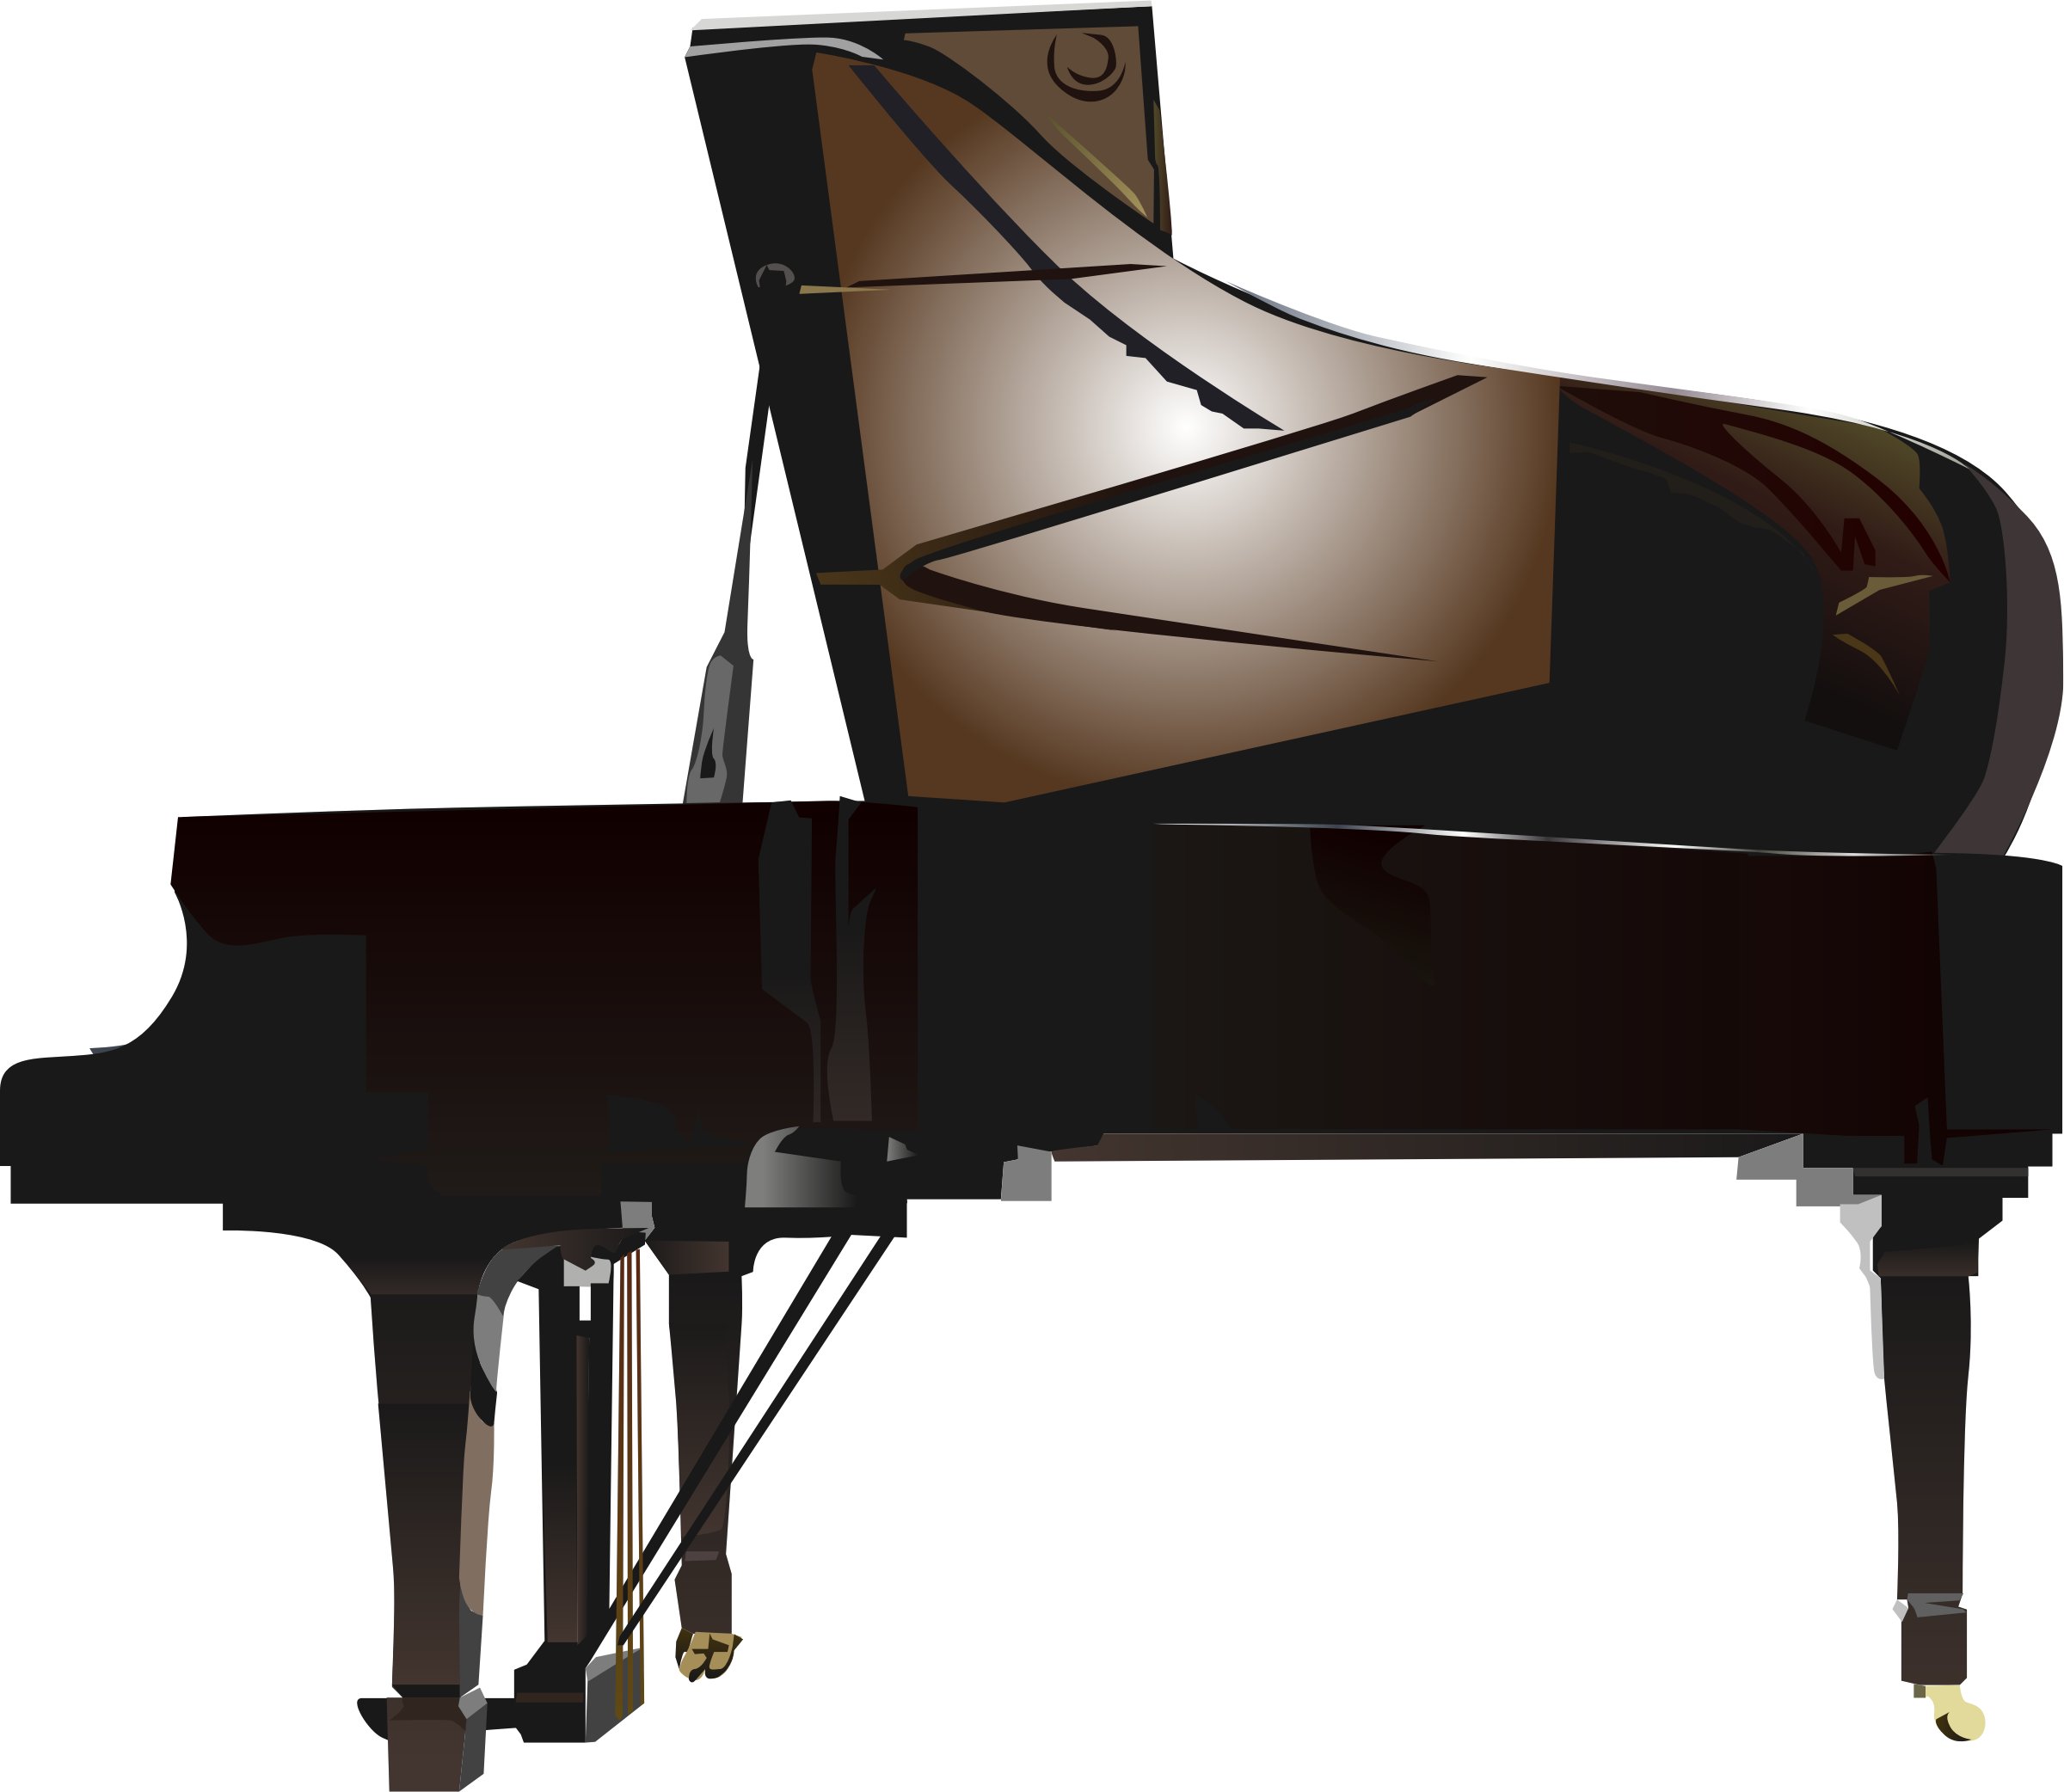 Grand big image png. Piano clipart harpsichord